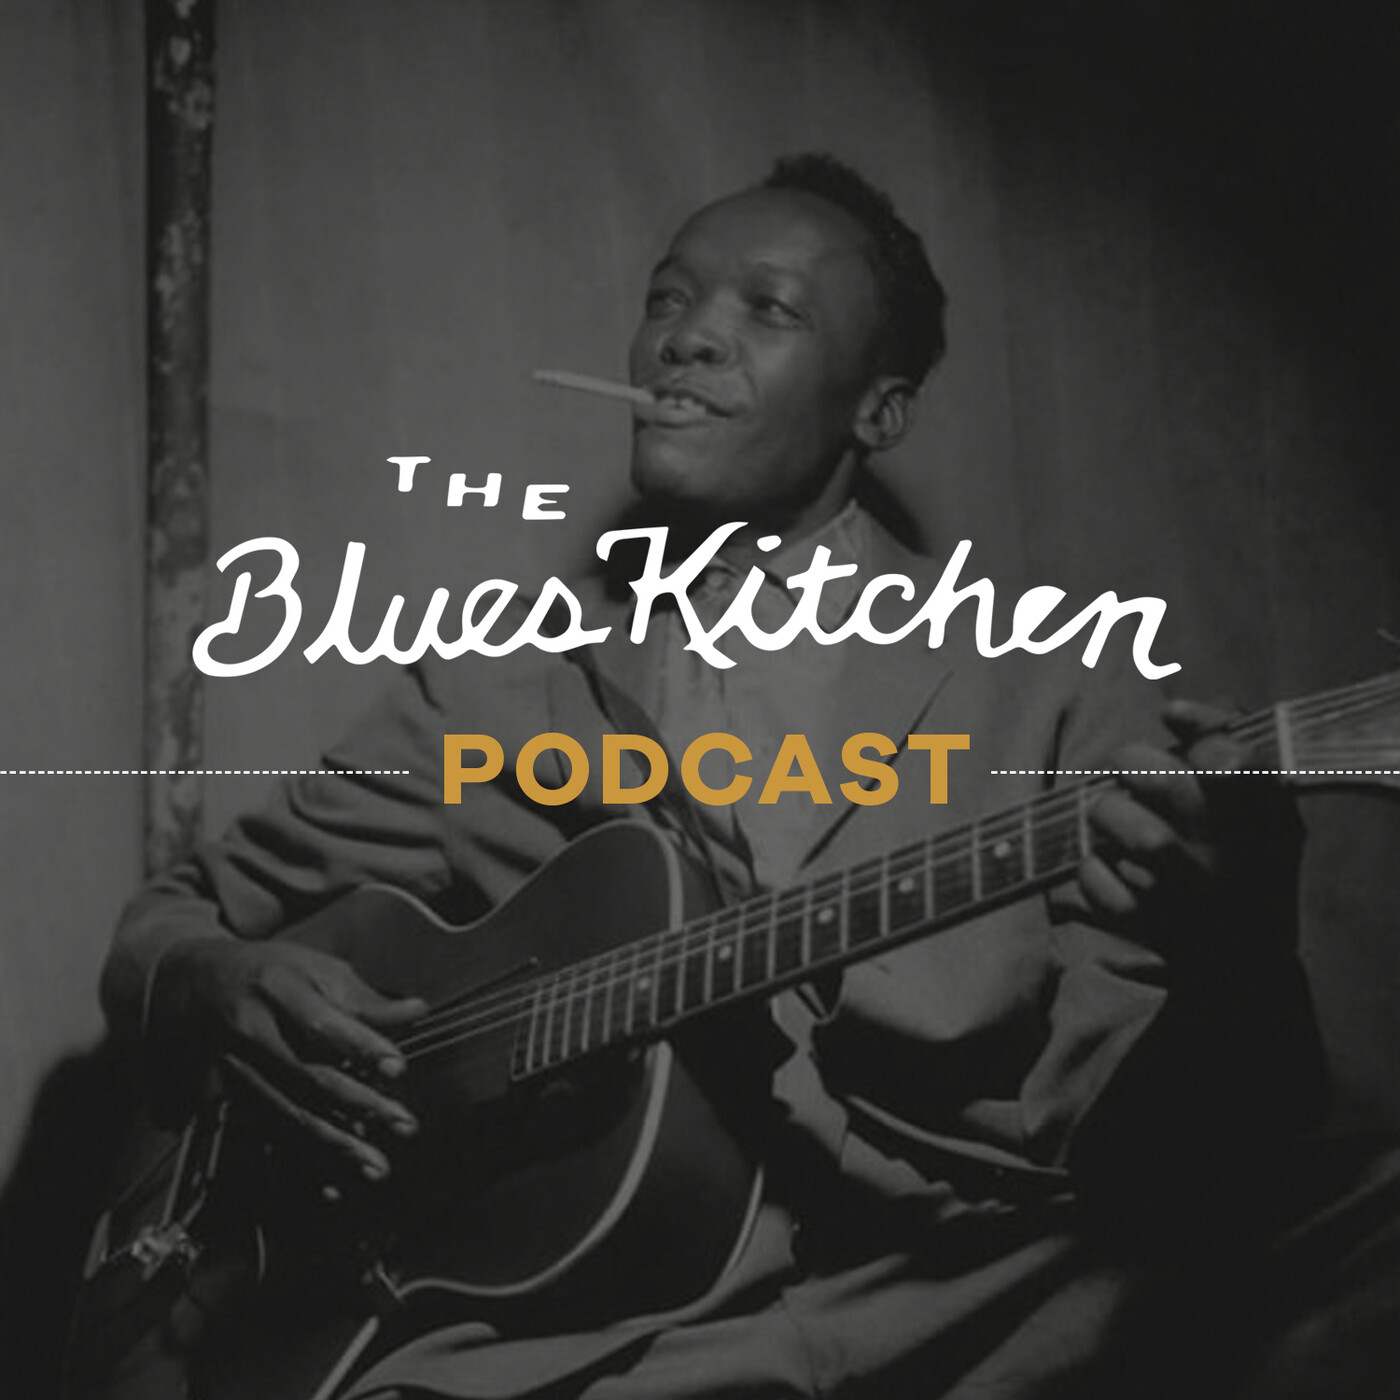 The Blues Kitchen Podcast: 22 June 2020